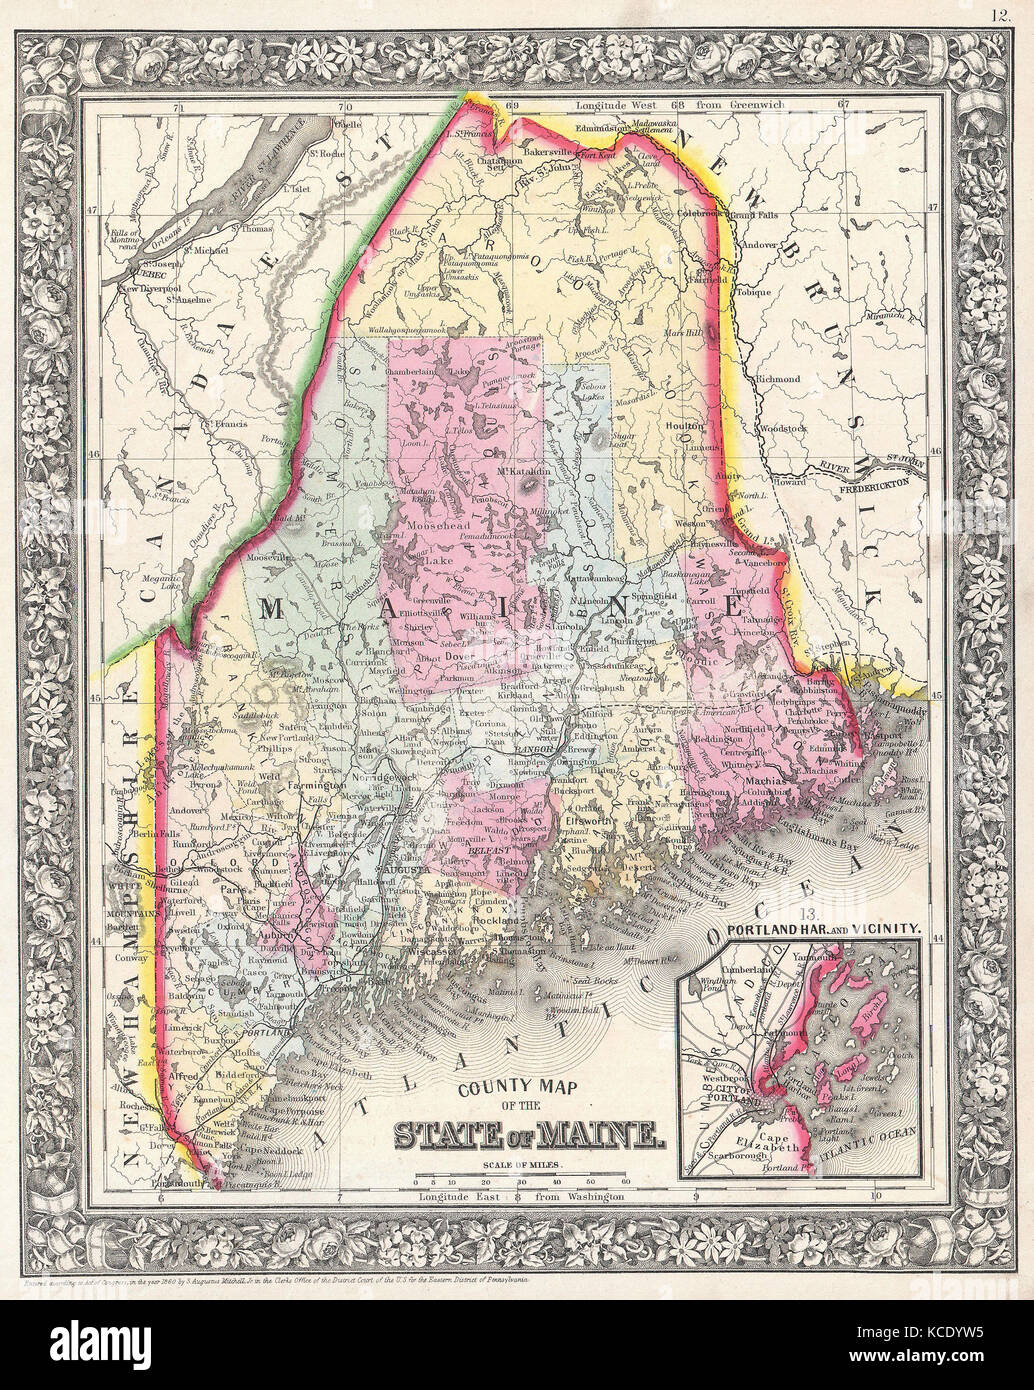 Map Of Maine Antique Stock Photos & Map Of Maine Antique ... Maine Wmd Map on maine zip code map, maine hunting districts map, maine state parks map, university of maine orono map, maine state police zone map, maine regions map, maine hunting zones map, maine on a map, maine power outage map, rockwood maine map, maine natural resource map, ashland maine map, maine narrow gauge railroad map, maine ski areas map, southern maine community college campus map, maine golf courses map, maine expanded archery map, maine lakes map, maine united states map, maine snow depth map,